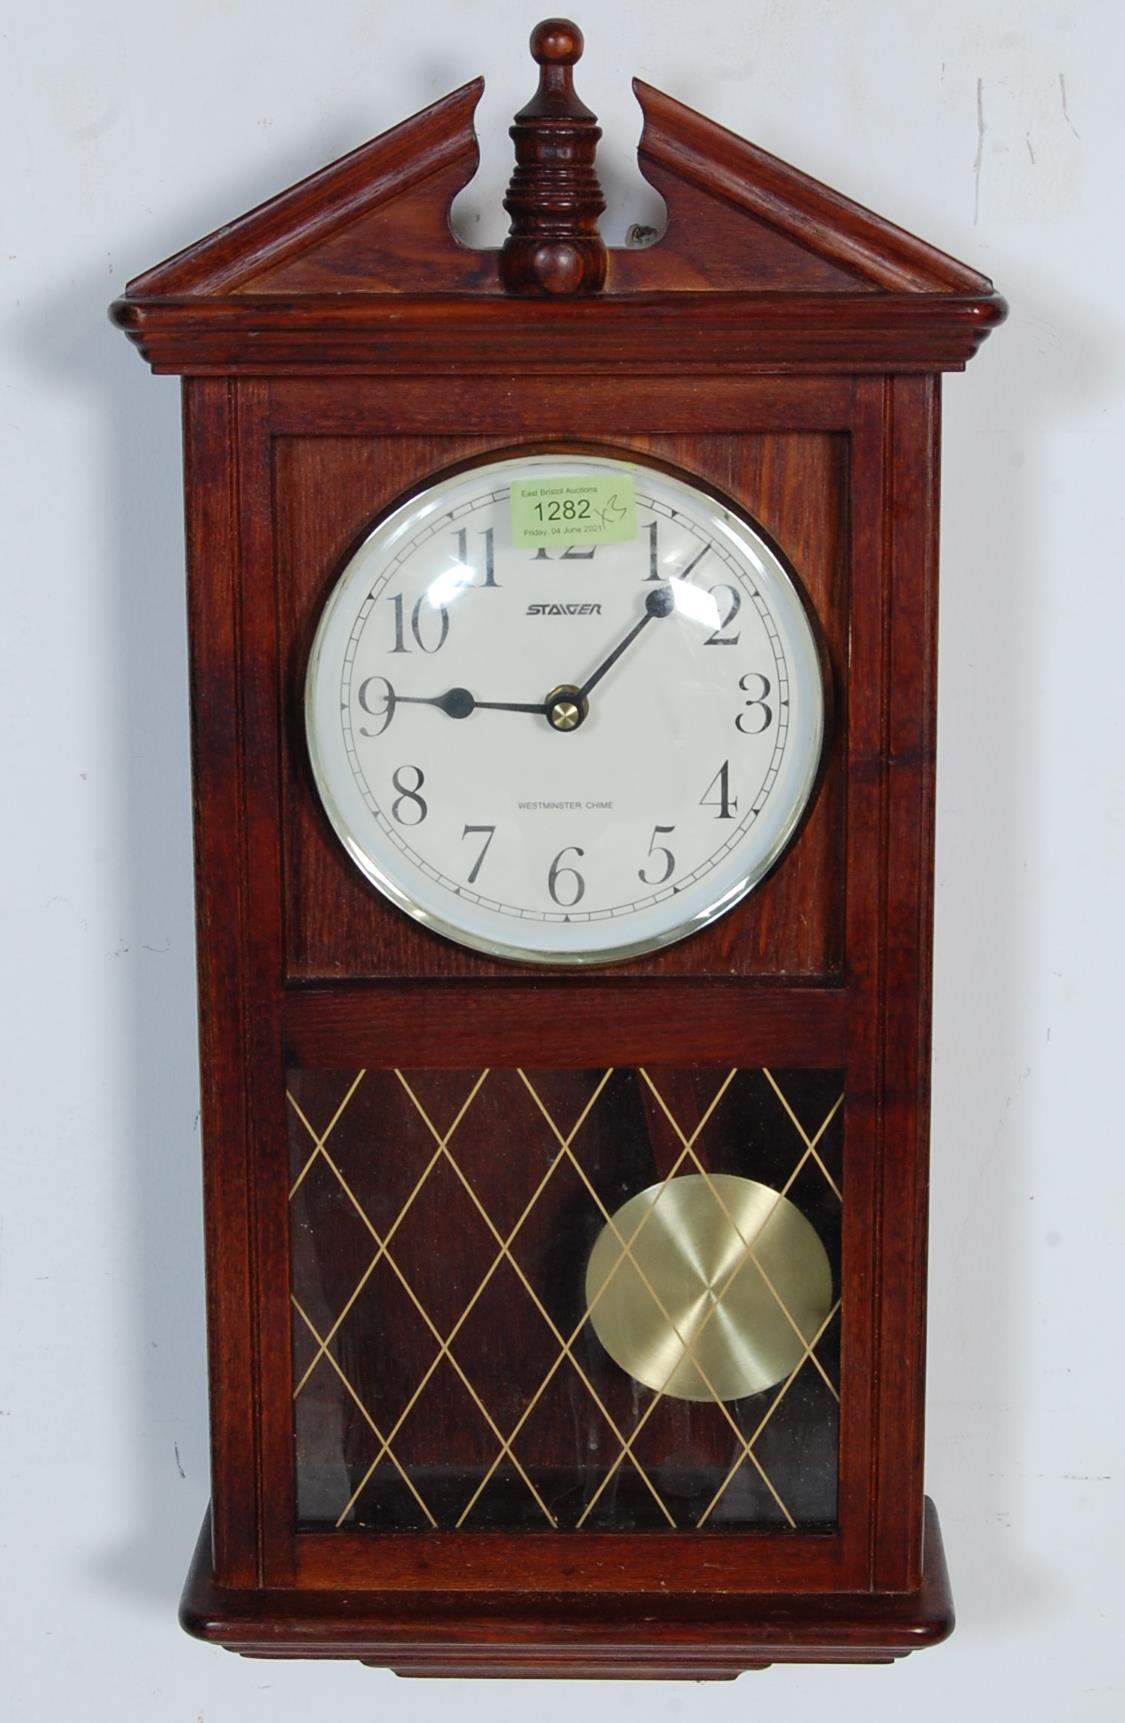 COLLECTION OF FOUR VINTAGE 20TH CENTURY WALL HANGING CLOCKS - Image 5 of 8